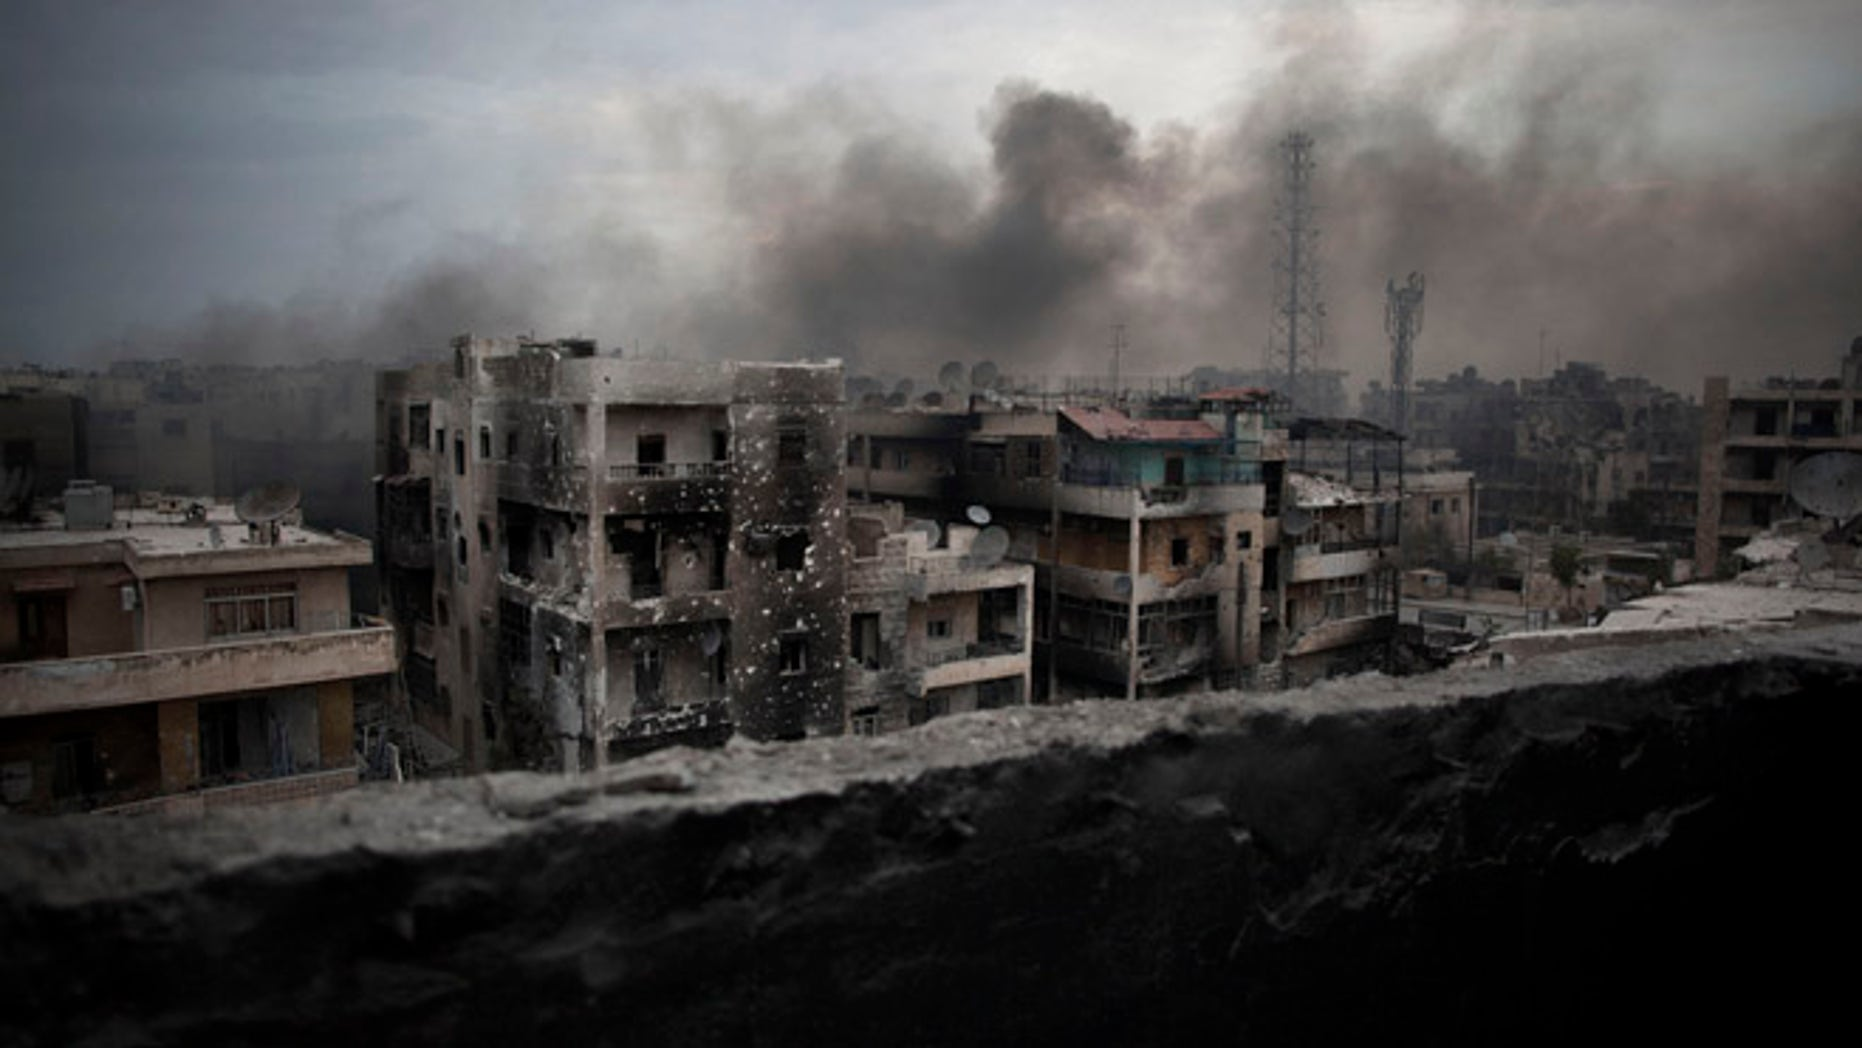 FILE - In this Tuesday, Oct. 2, 2012 file photo, smoke rises over Saif Al Dawla district, in Aleppo, Syria. Residents in the rebel-held districts of Aleppo have a reprieve from the incessant bombings by Syrian government warplanes and the promise of an end to the crippling siege that has left produce stalls bare. (AP Photo/ Manu Brabo, File)